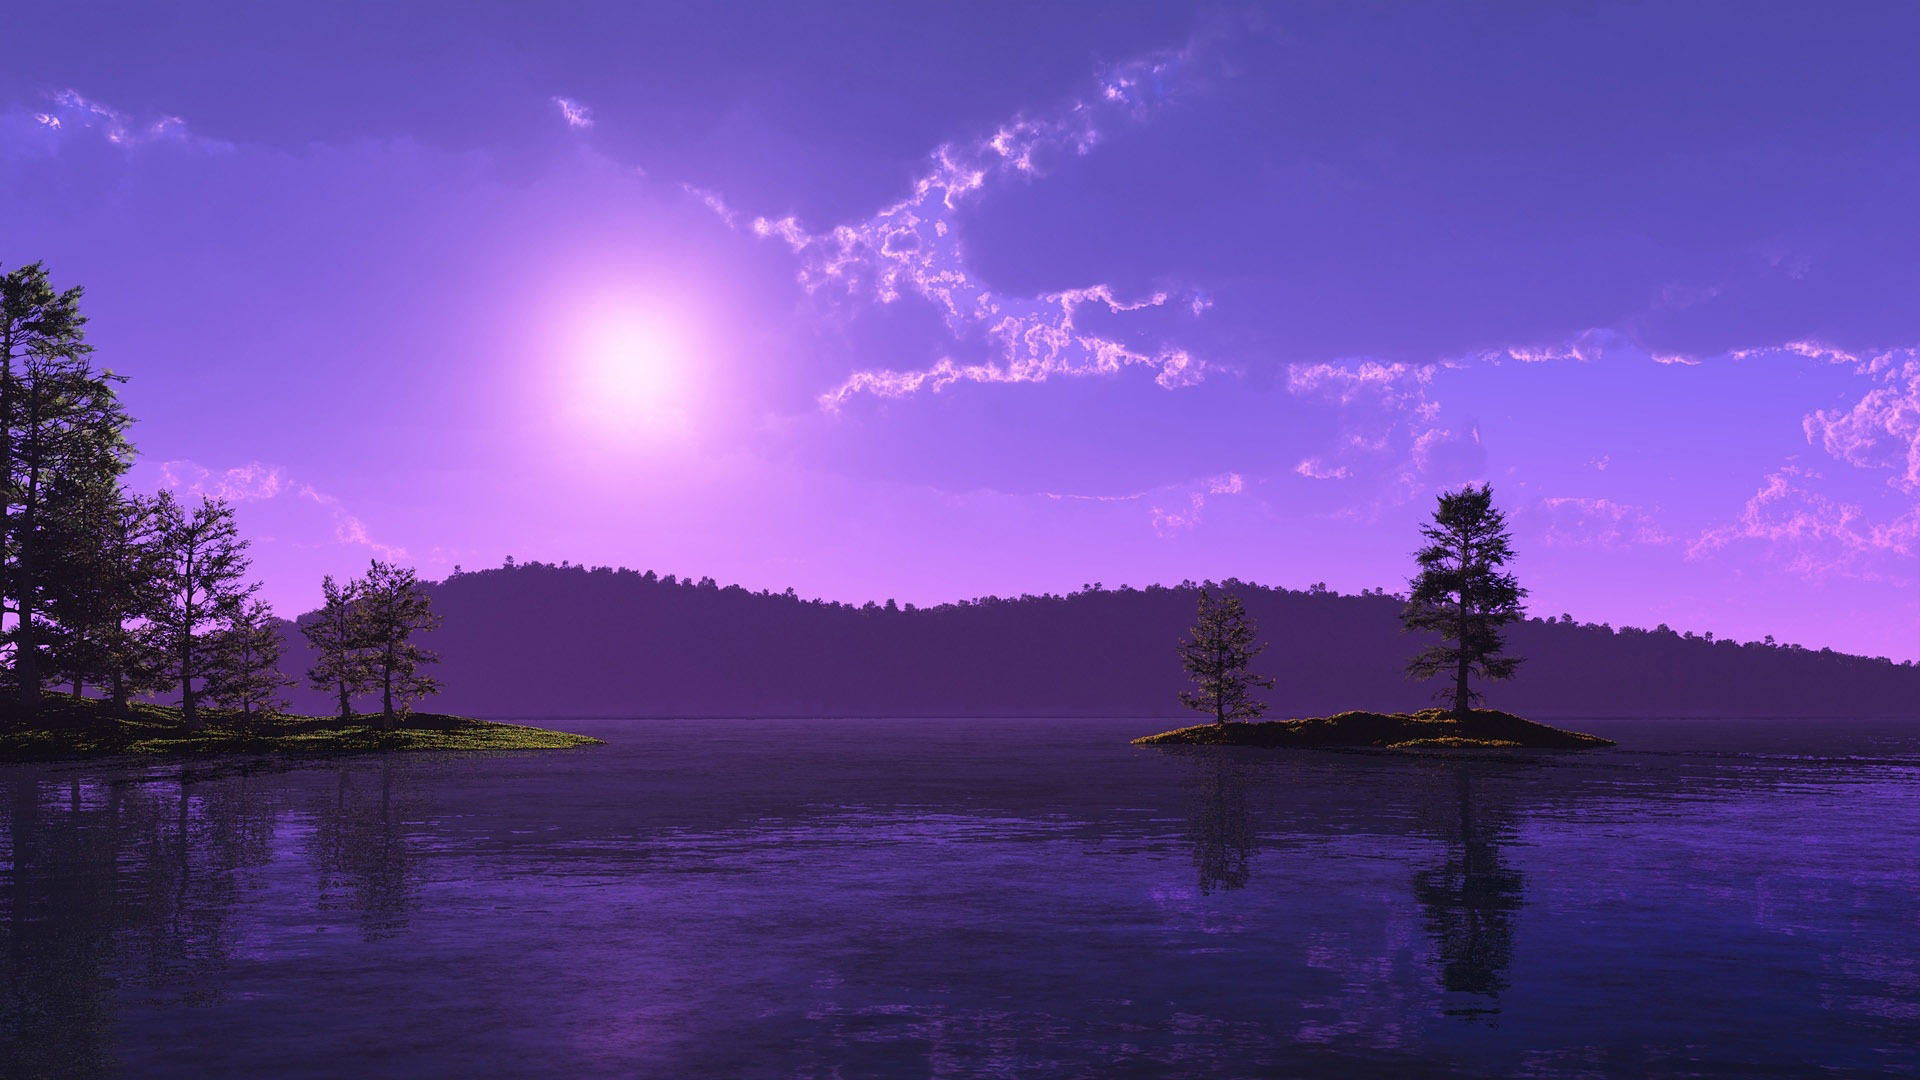 Purple Sunset Hd Wallpaper Purple Sunset 1944294 Hd Wallpaper Backgrounds Download